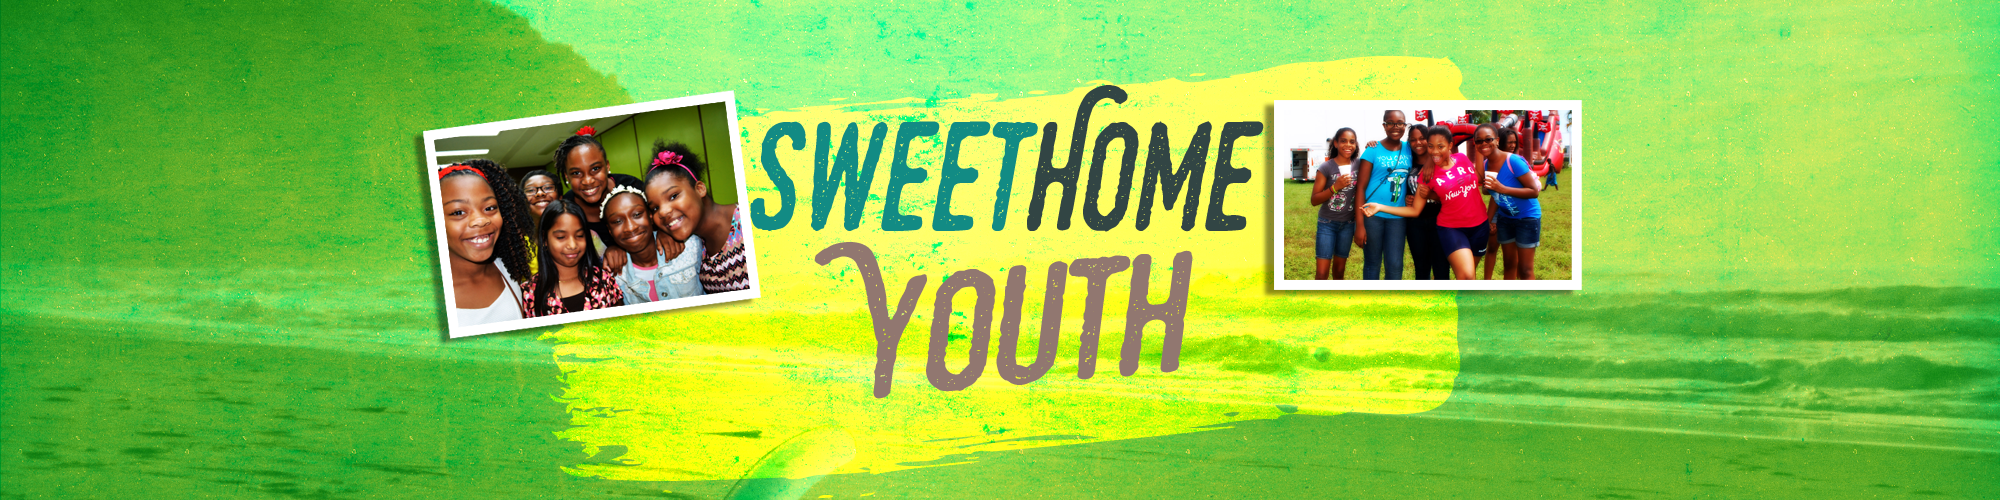 sweet-home-youth